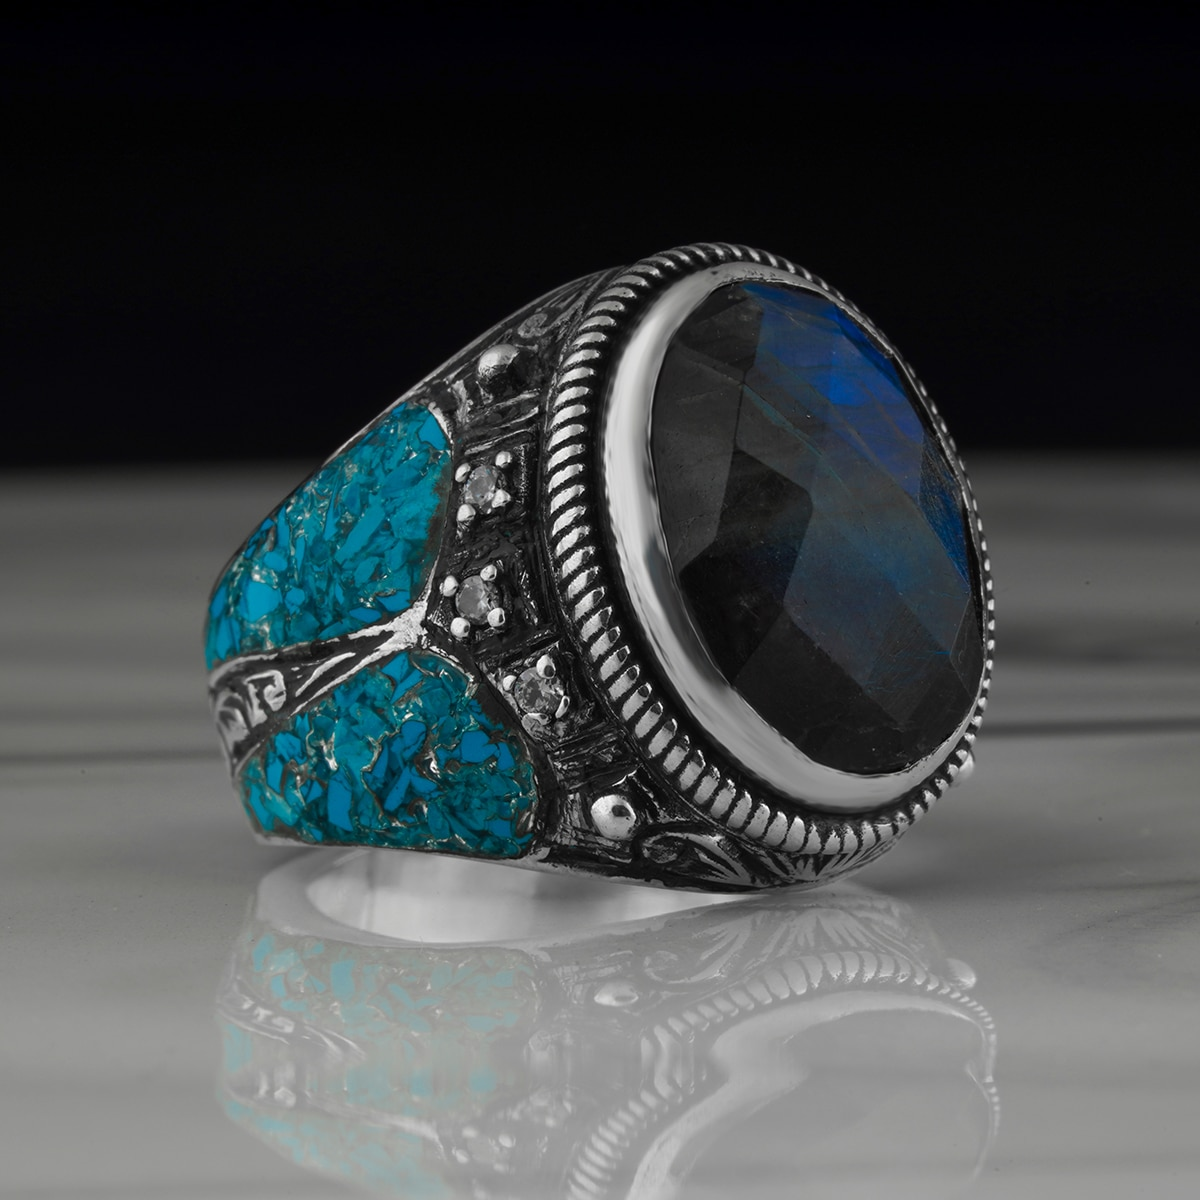 Sterling Silver Rings For Men Chalcedony Stone Blue Colour 925 Silver Rings 2021 Trend  Jewelry Fashion Vintage Gift Aqeq Onyx